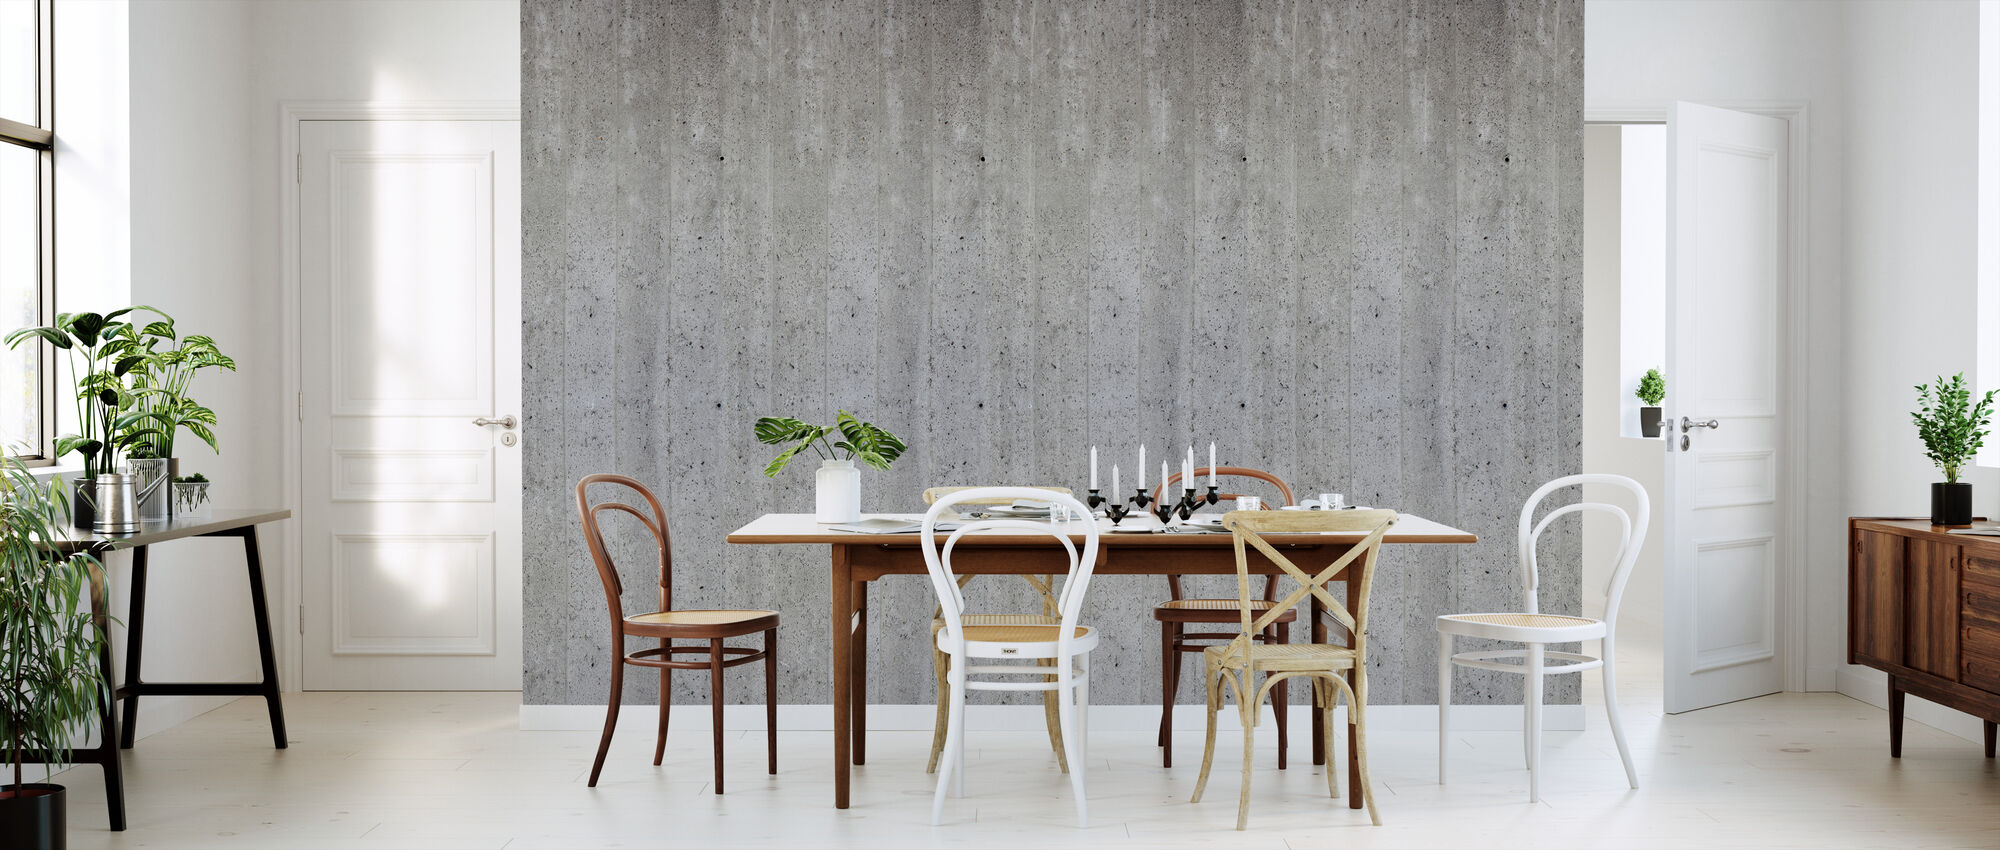 Concrete Wall - Wallpaper - Kitchen